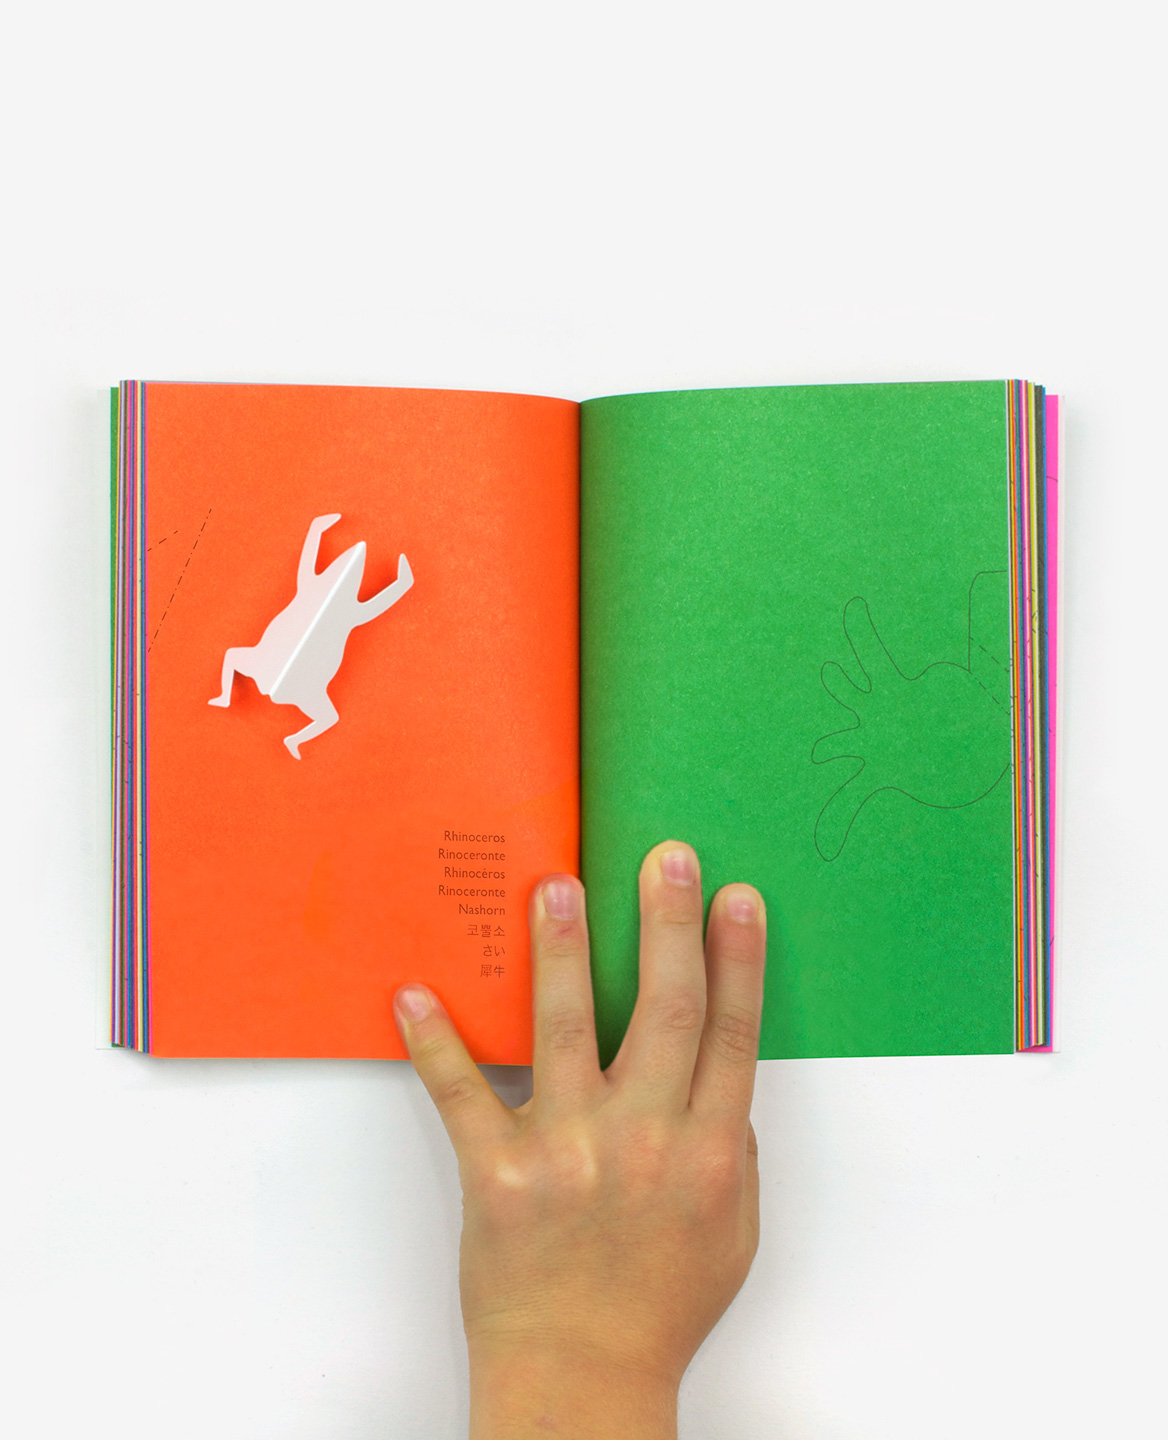 Orange and green double-page of the book Zoo in my hand by Inkyeong & Sunkyung Kim published by Éditions du livre